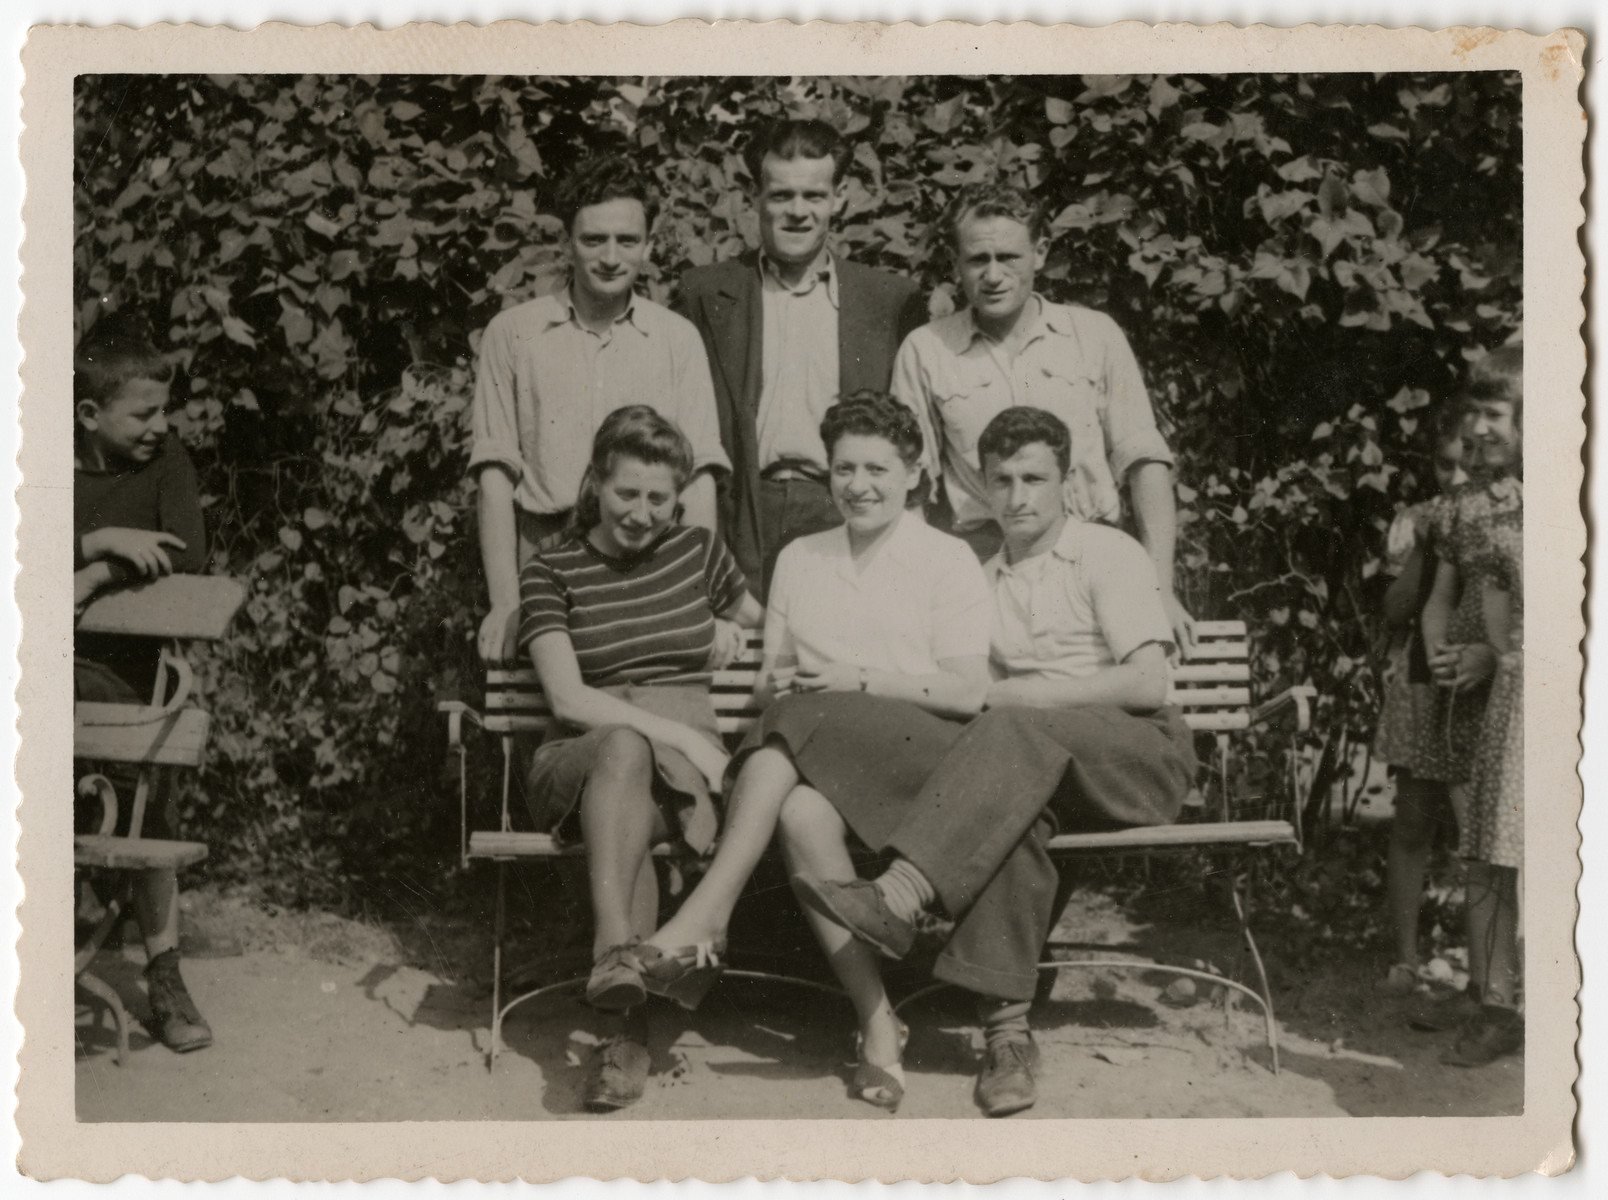 Group portrait of six displaced persons in the Schlachtensee camp.  Pictured are Mosie, Juita, Podesswa, Lew, Dora, and Orlkinowa.